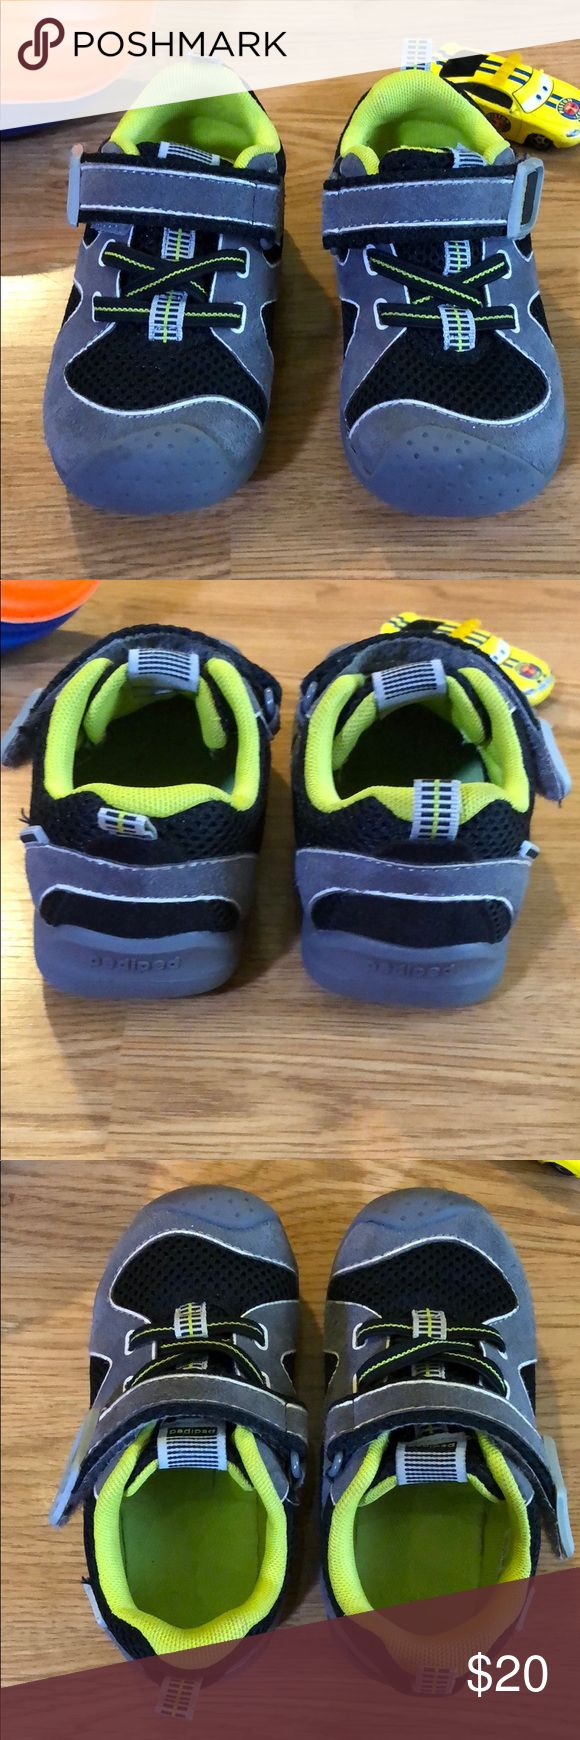 Like new Pediped washable 7.5-8 (24) runners These are an excellent condition pair of Pediped washable Velcro runners! Soles show barely any wear, everything is in excellent condition. Worn only about 5 times. Size 24, which fits a 7.5-8. Retails for $40 new. Smoke and pet free home. Color is grey, black and green. pediped Shoes Sneakers